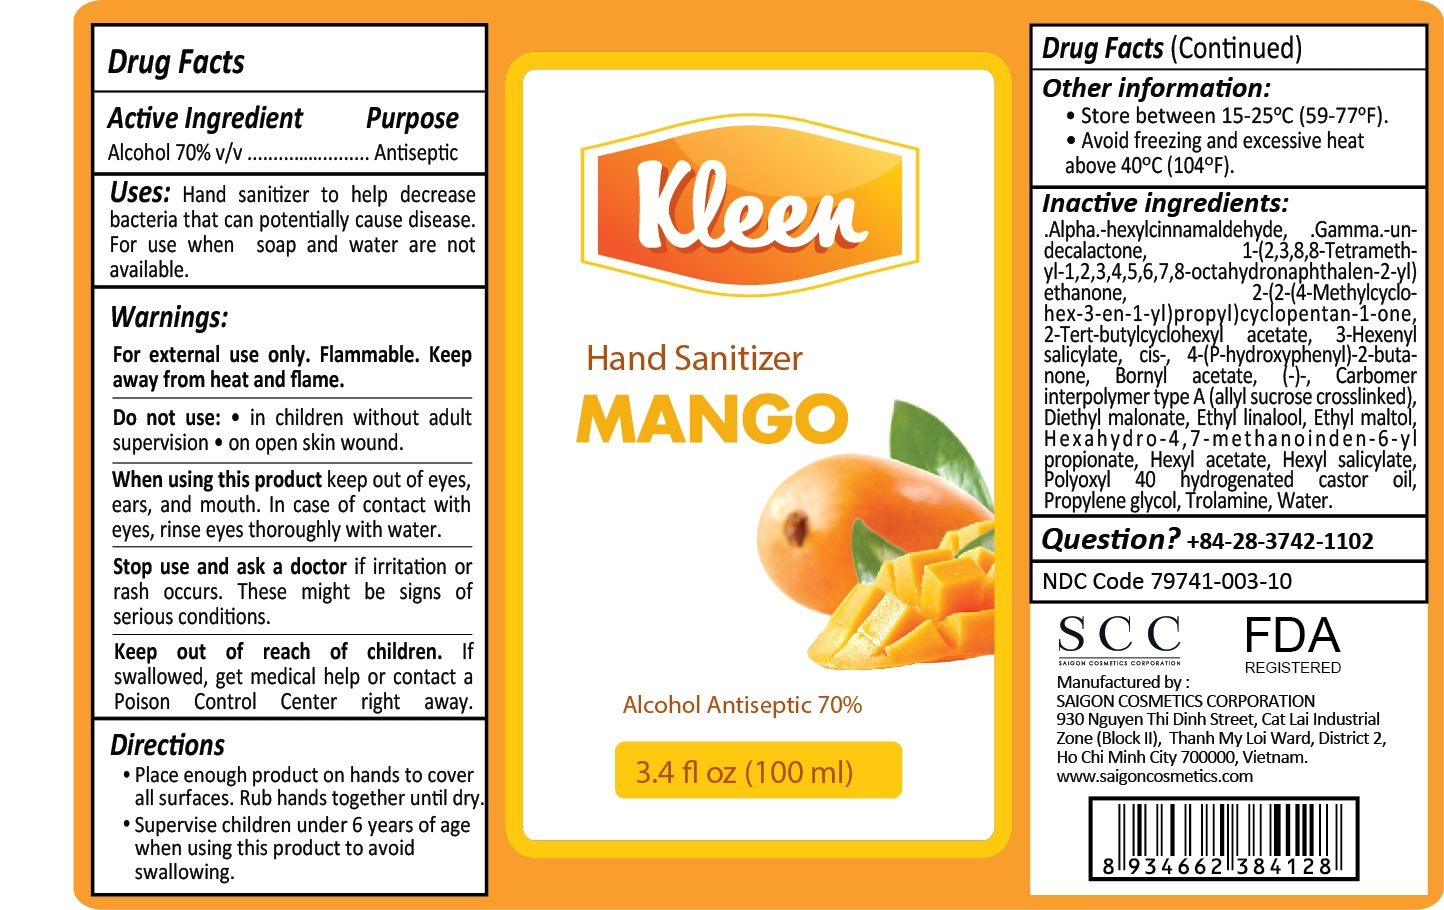 Kleen Hand Sanitizer Mango Label 100mL